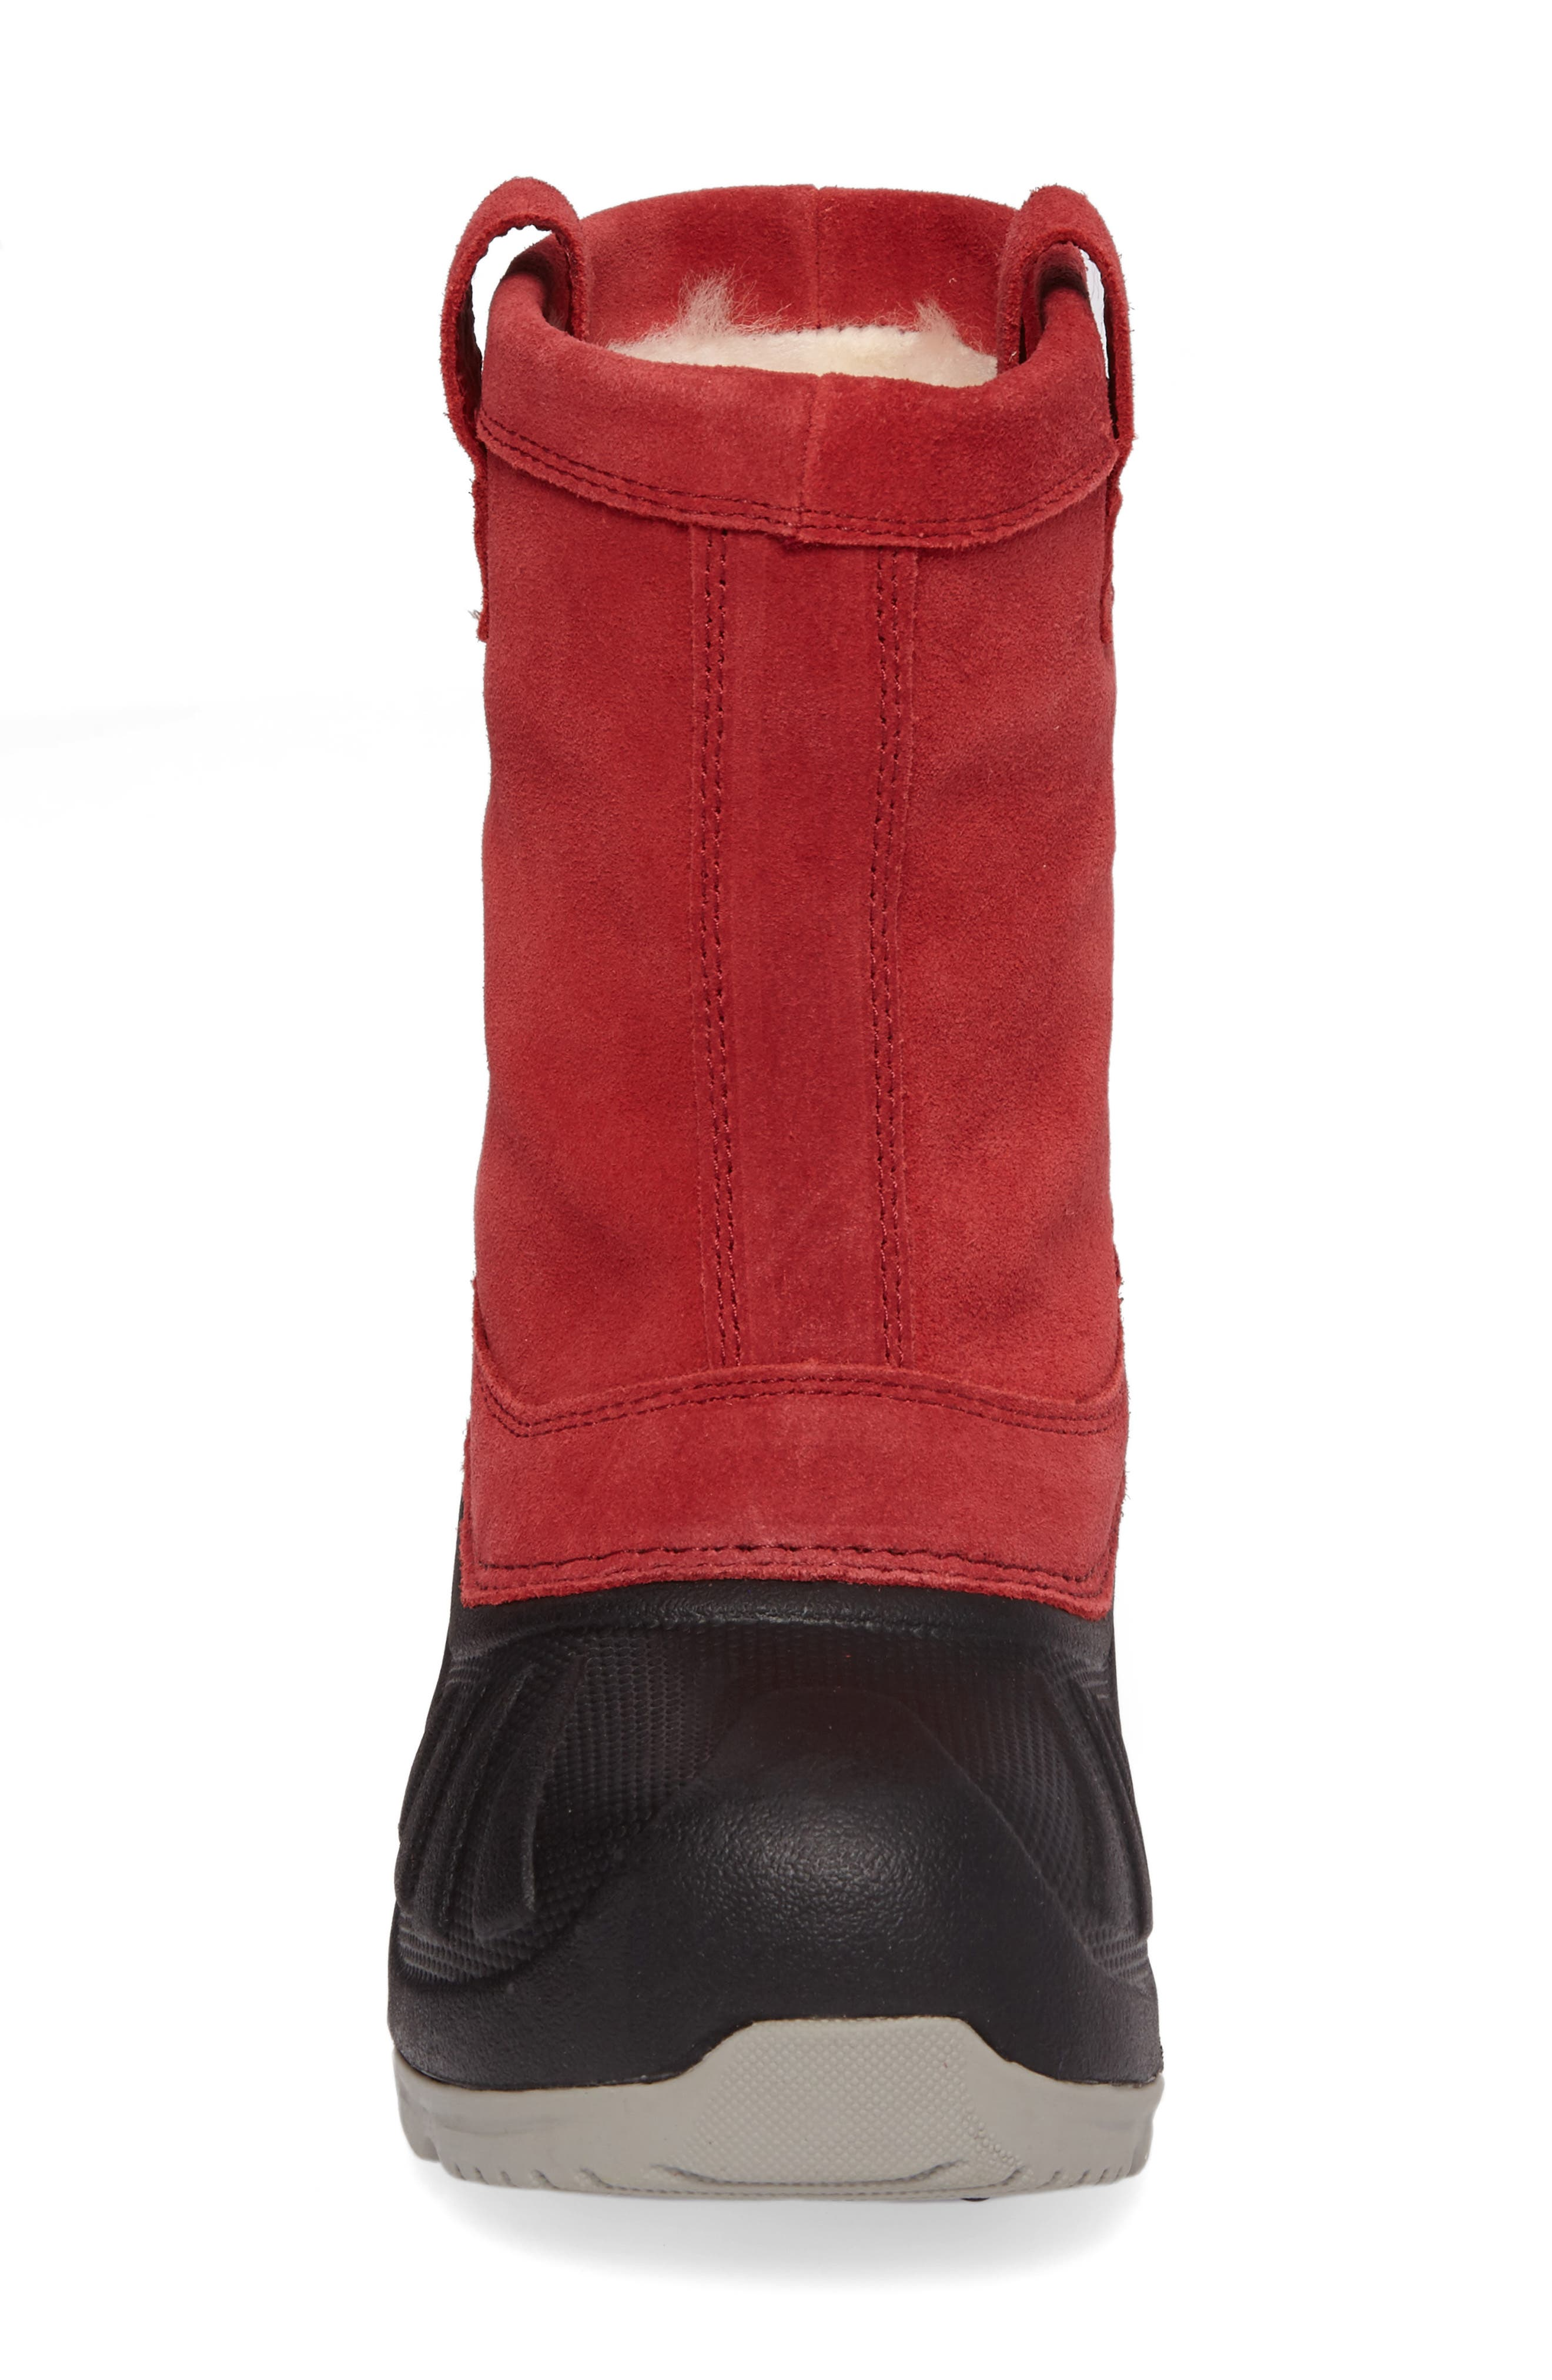 Evertt Waterproof Thinsulate<sup>™</sup> Insulated Snow Boot,                             Alternate thumbnail 8, color,